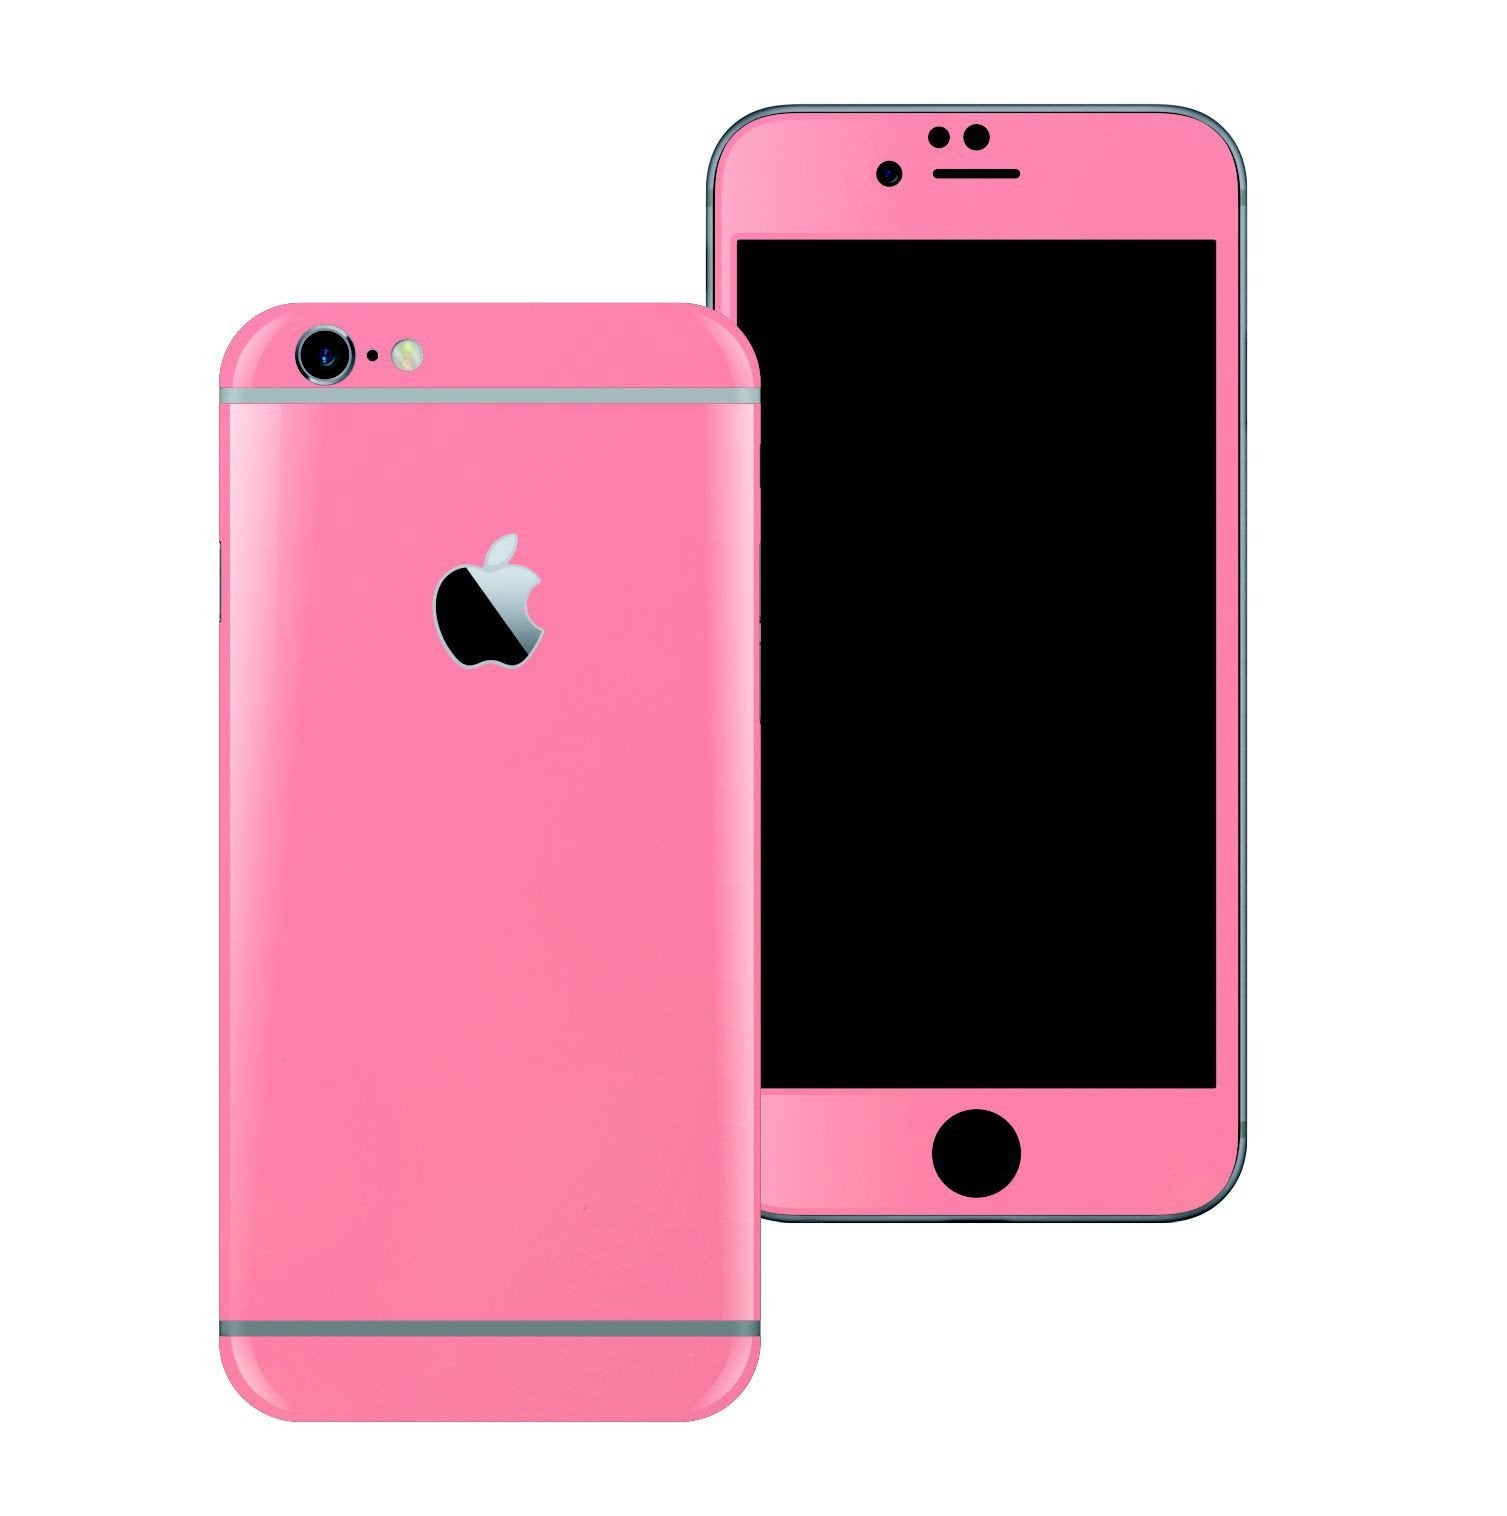 iPhone 6 Plus Colorful 3M PINK MATT Skin Wrap Sticker Cover Protector Decal by EasySkinz